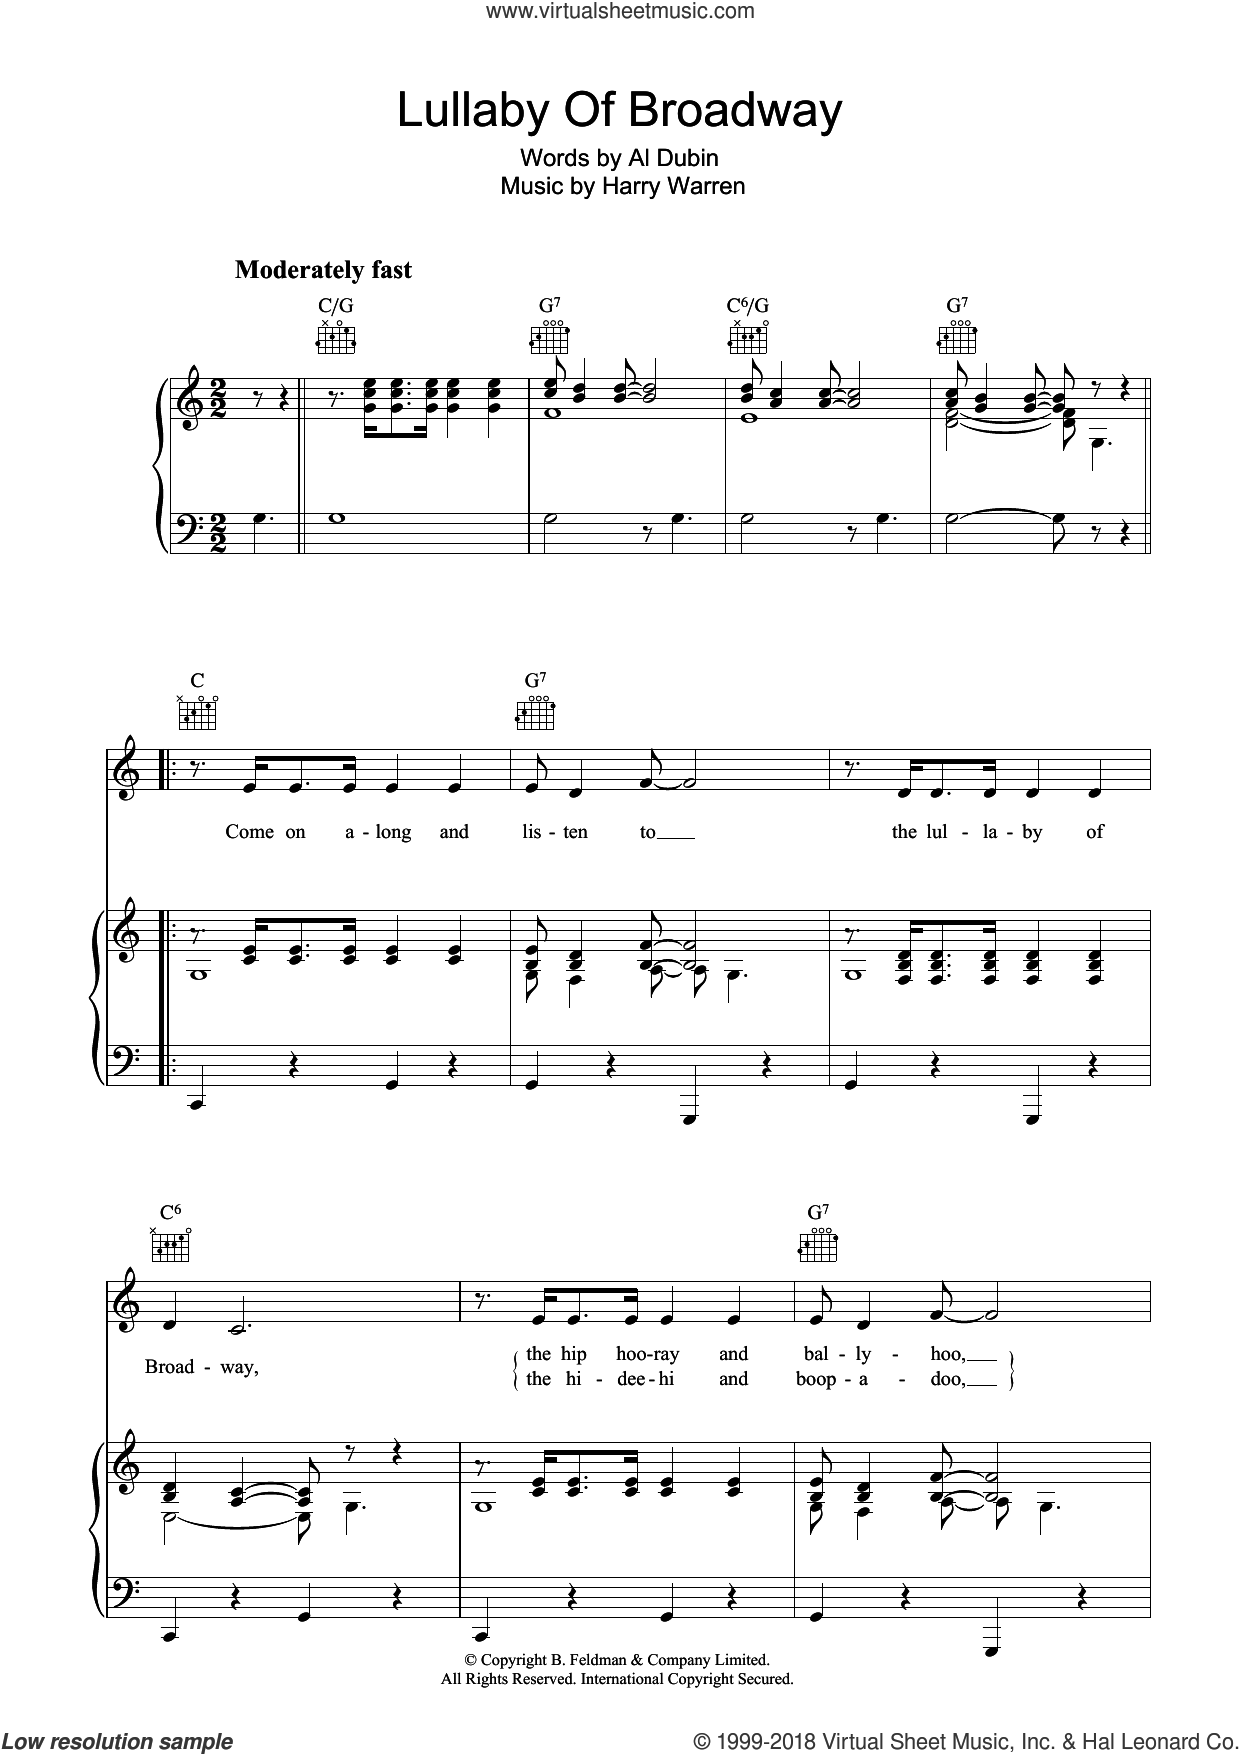 Lullaby Of Broadway sheet music for voice, piano or guitar by Al Dubin